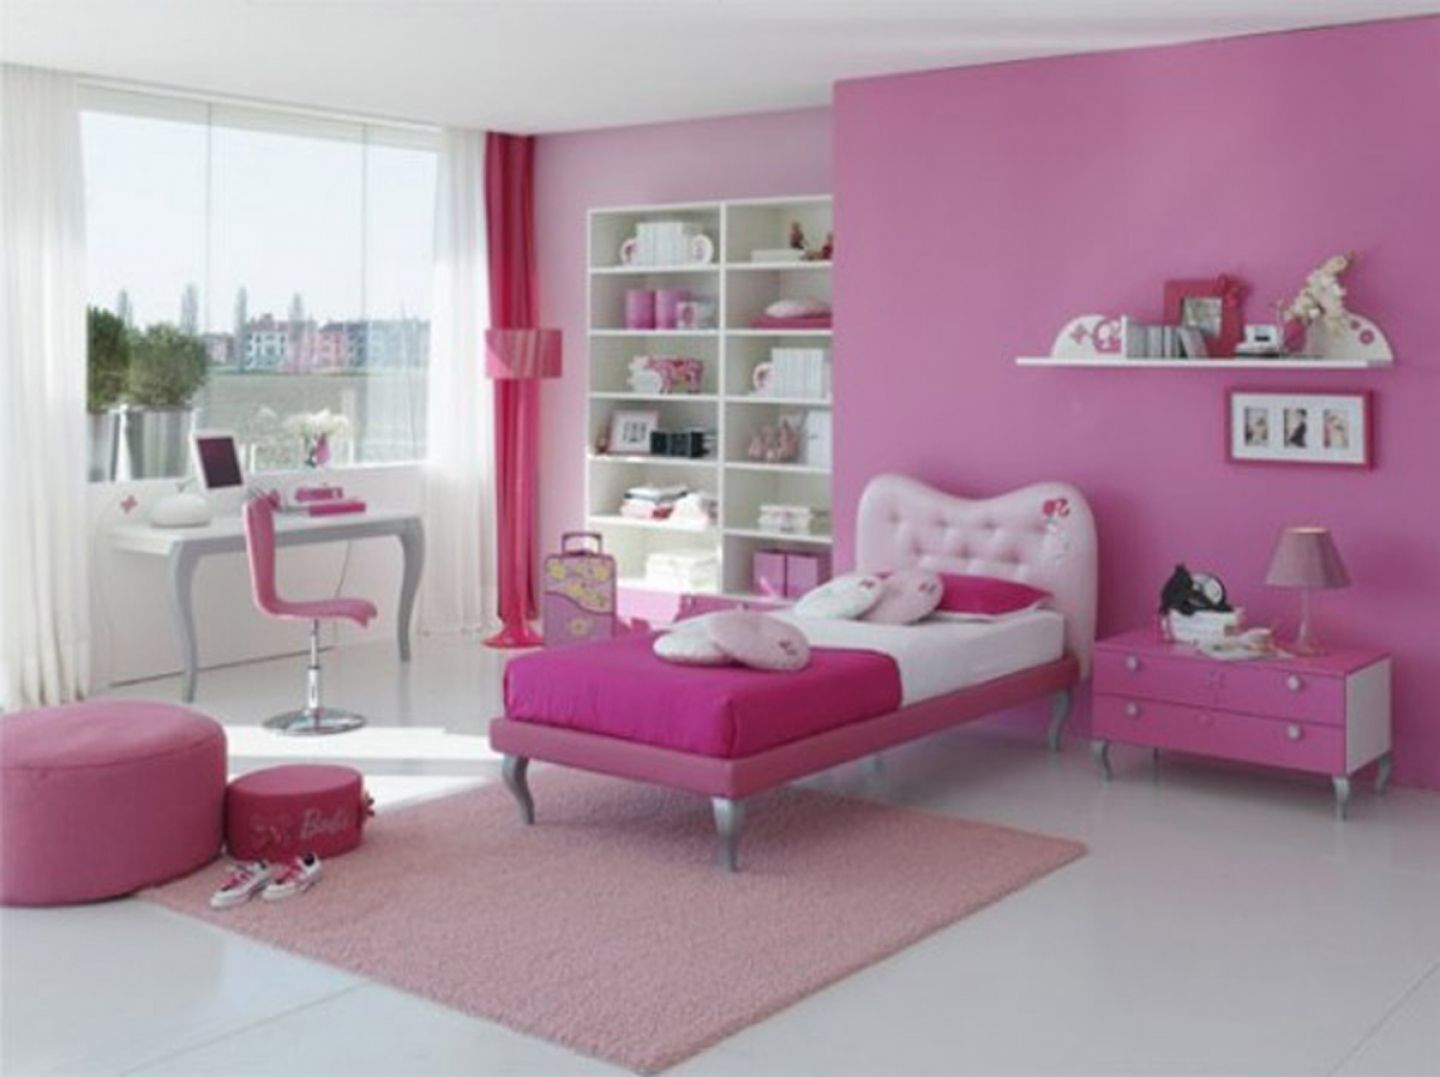 Pictures Of Nice Bedrooms 30+ beautiful bedroom designs for teenage girls - beautiful wall